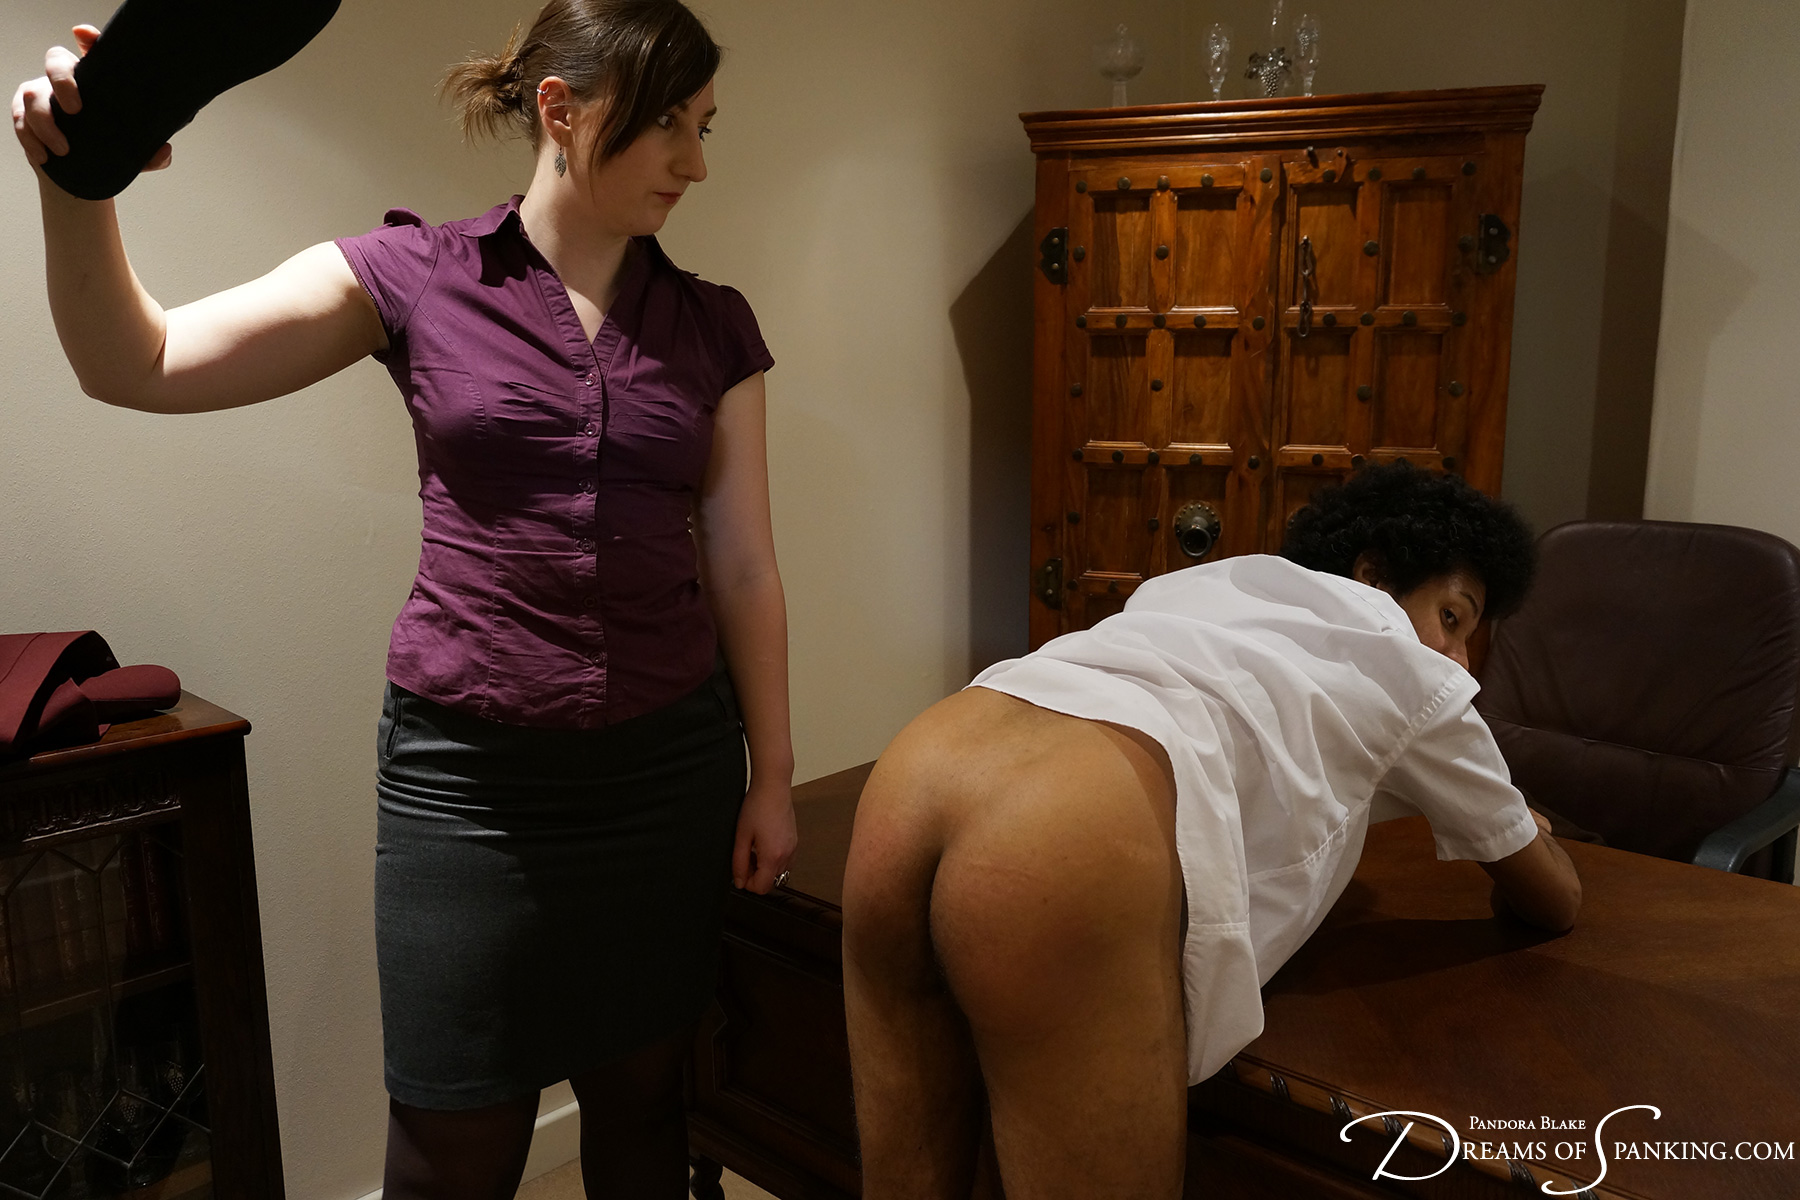 David visits the headmistress' study at Dreams of Spanking